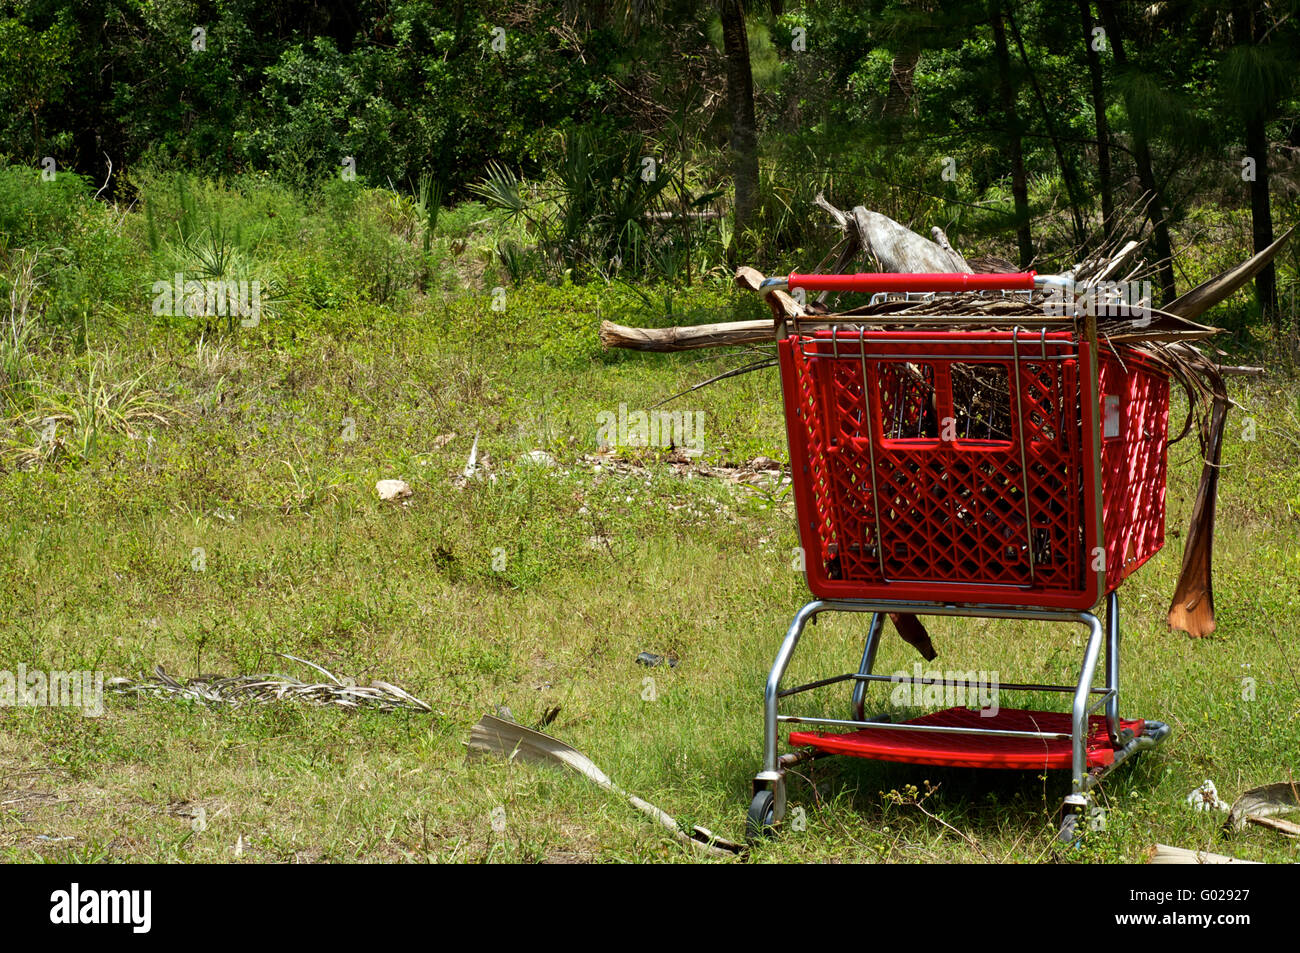 A bright red supermarket shopping cart is contrasted by the green of the wilderness. The cart is full of old dry - Stock Image